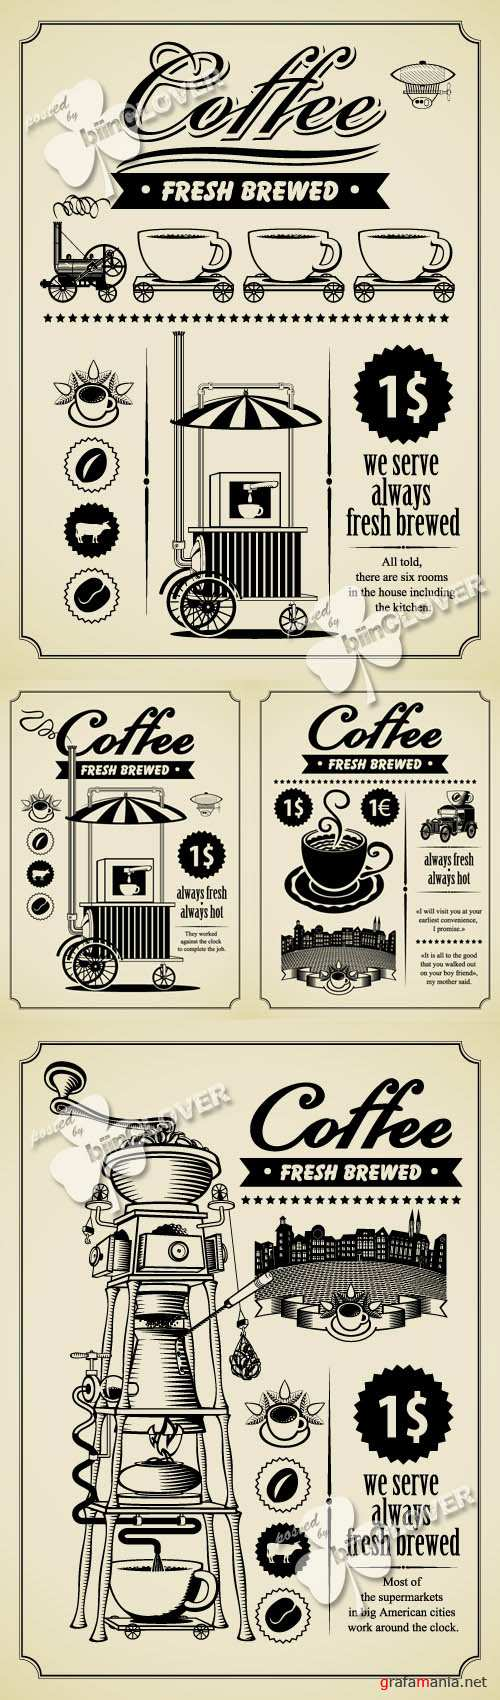 Retro design of coffee brochure 0296